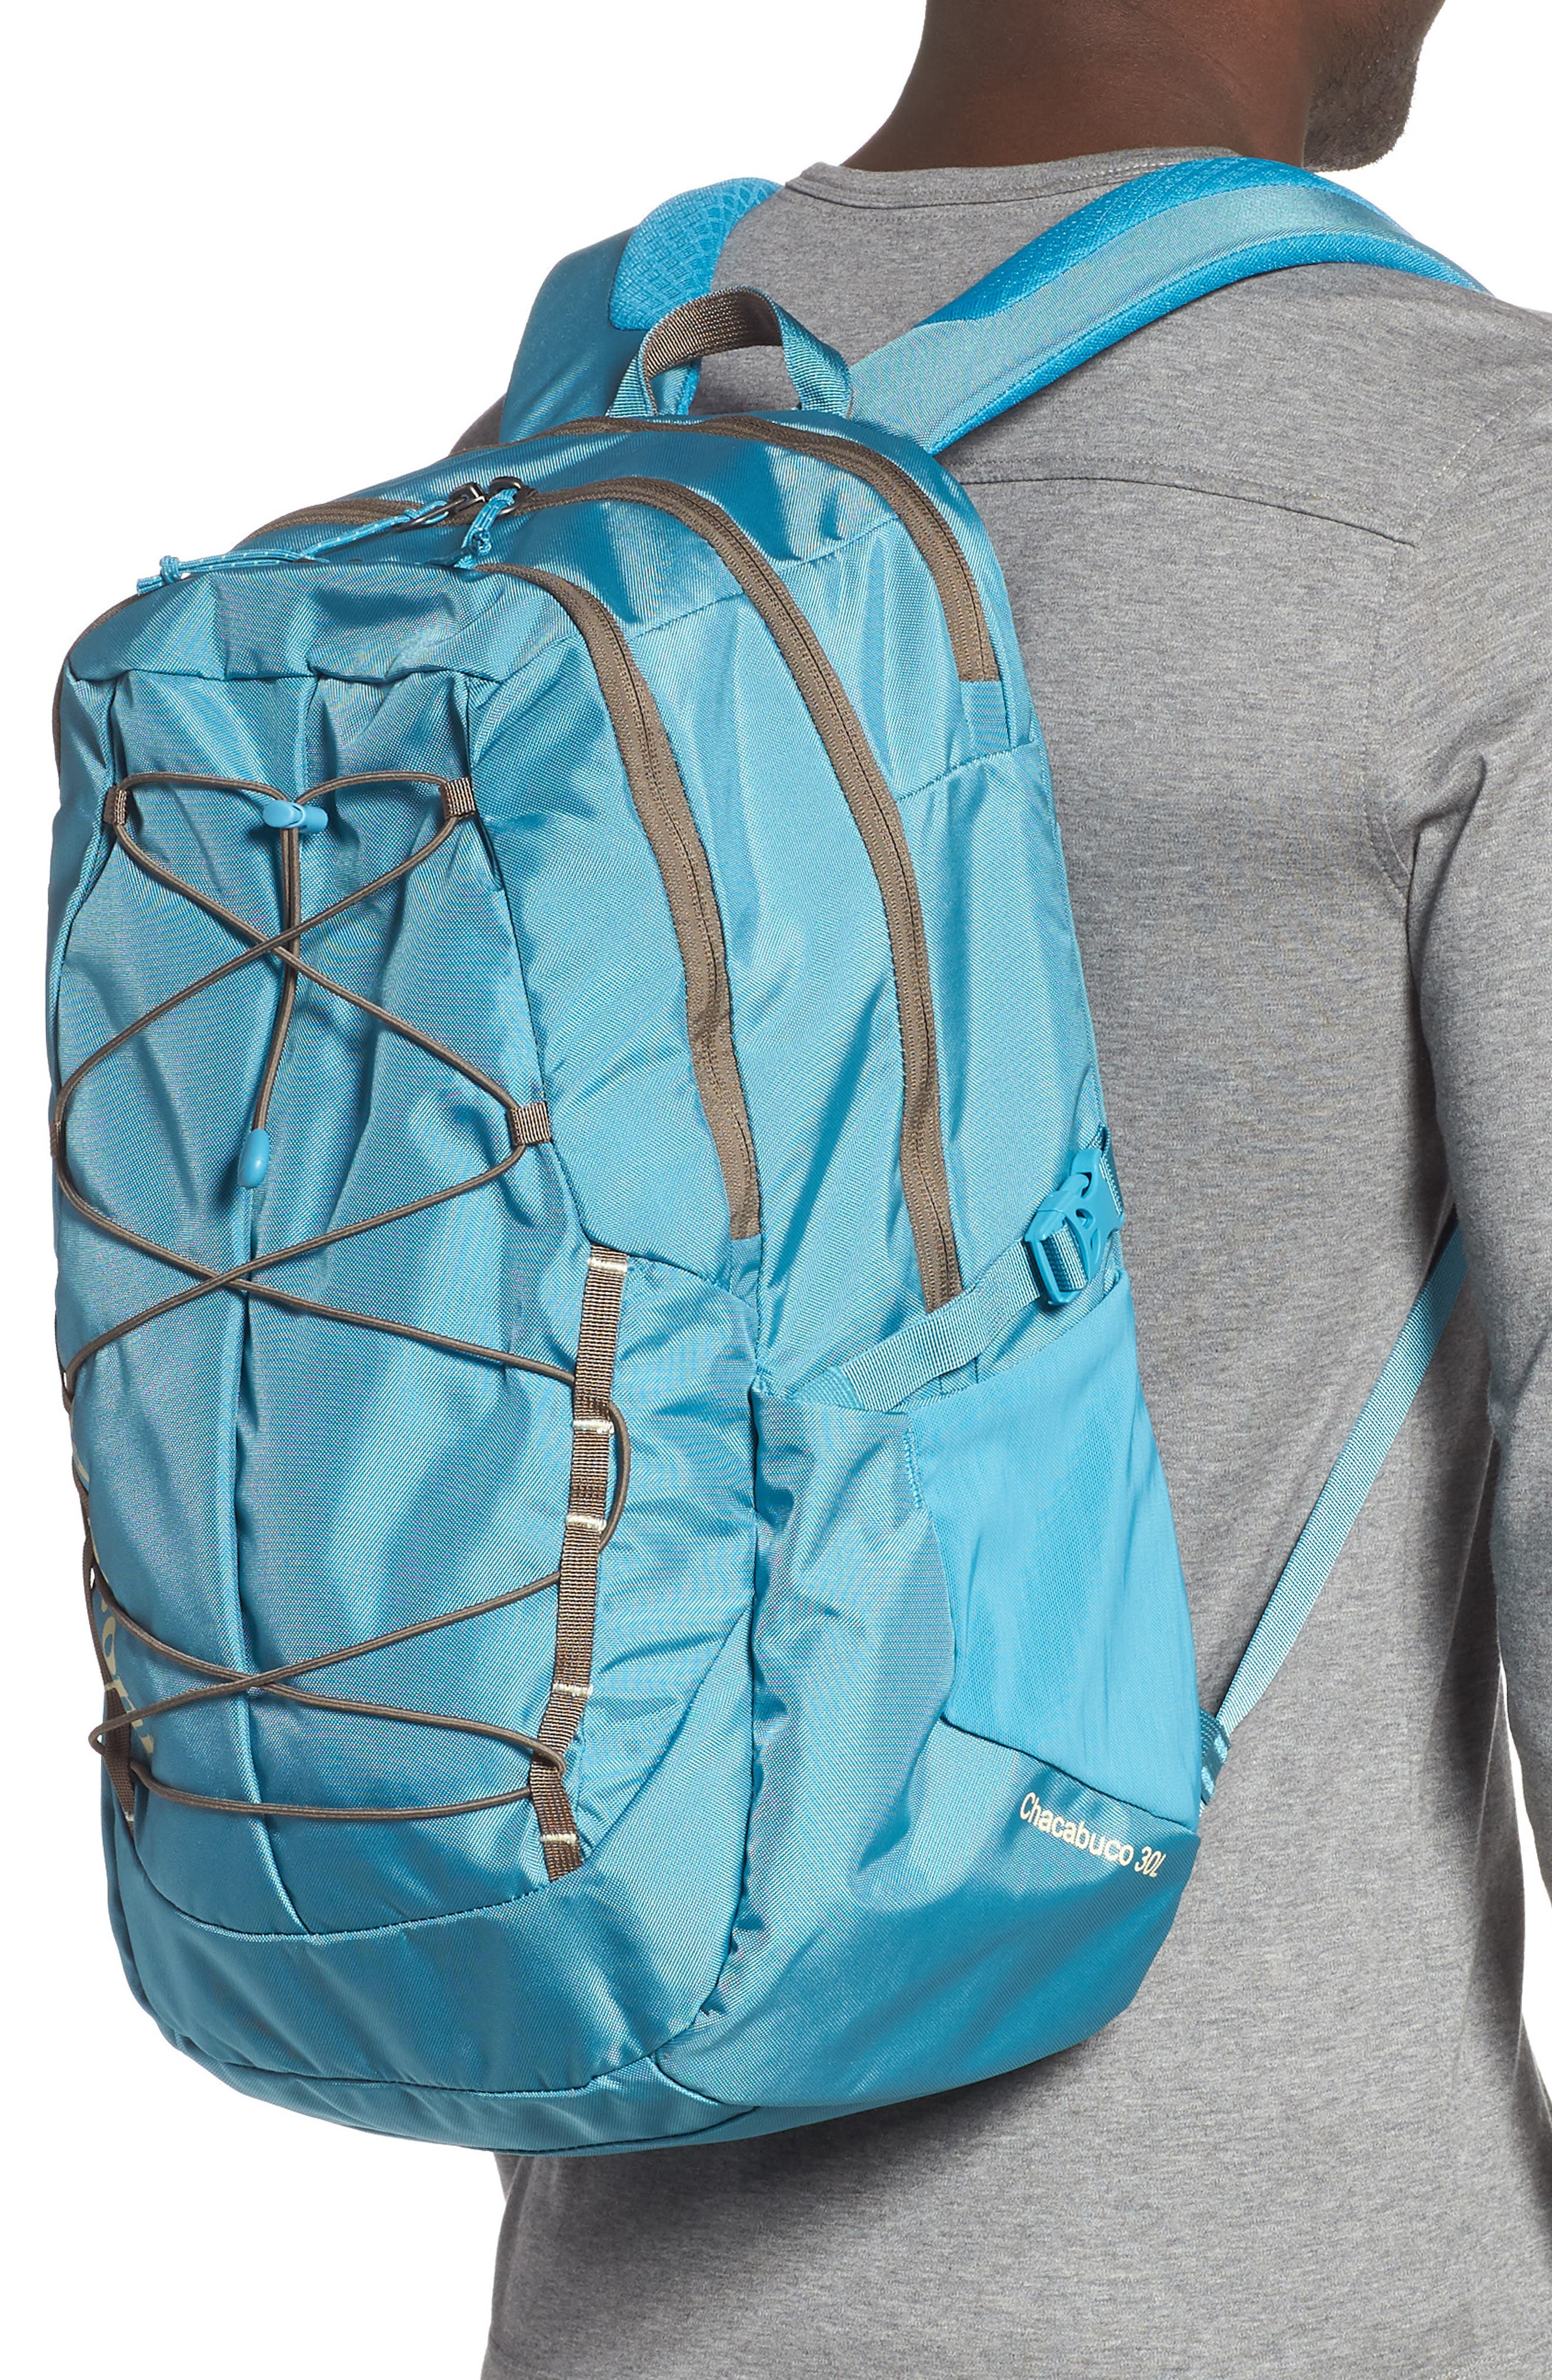 PATAGONIA,                             30L Chacabuco Backpack,                             Alternate thumbnail 2, color,                             MAKO BLUE